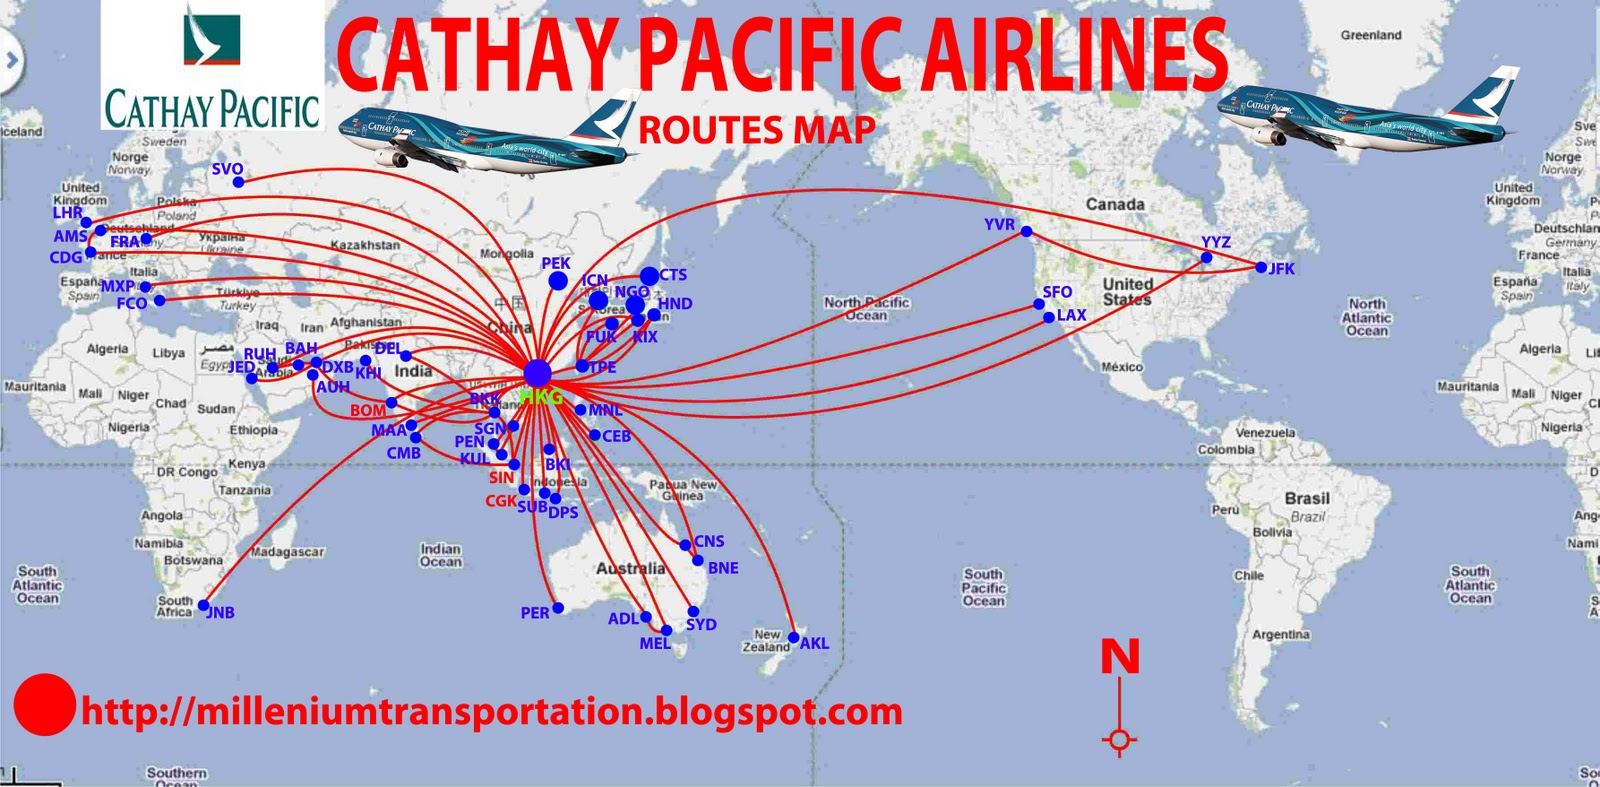 routes map: Cathay Pacific Airways Routes Map